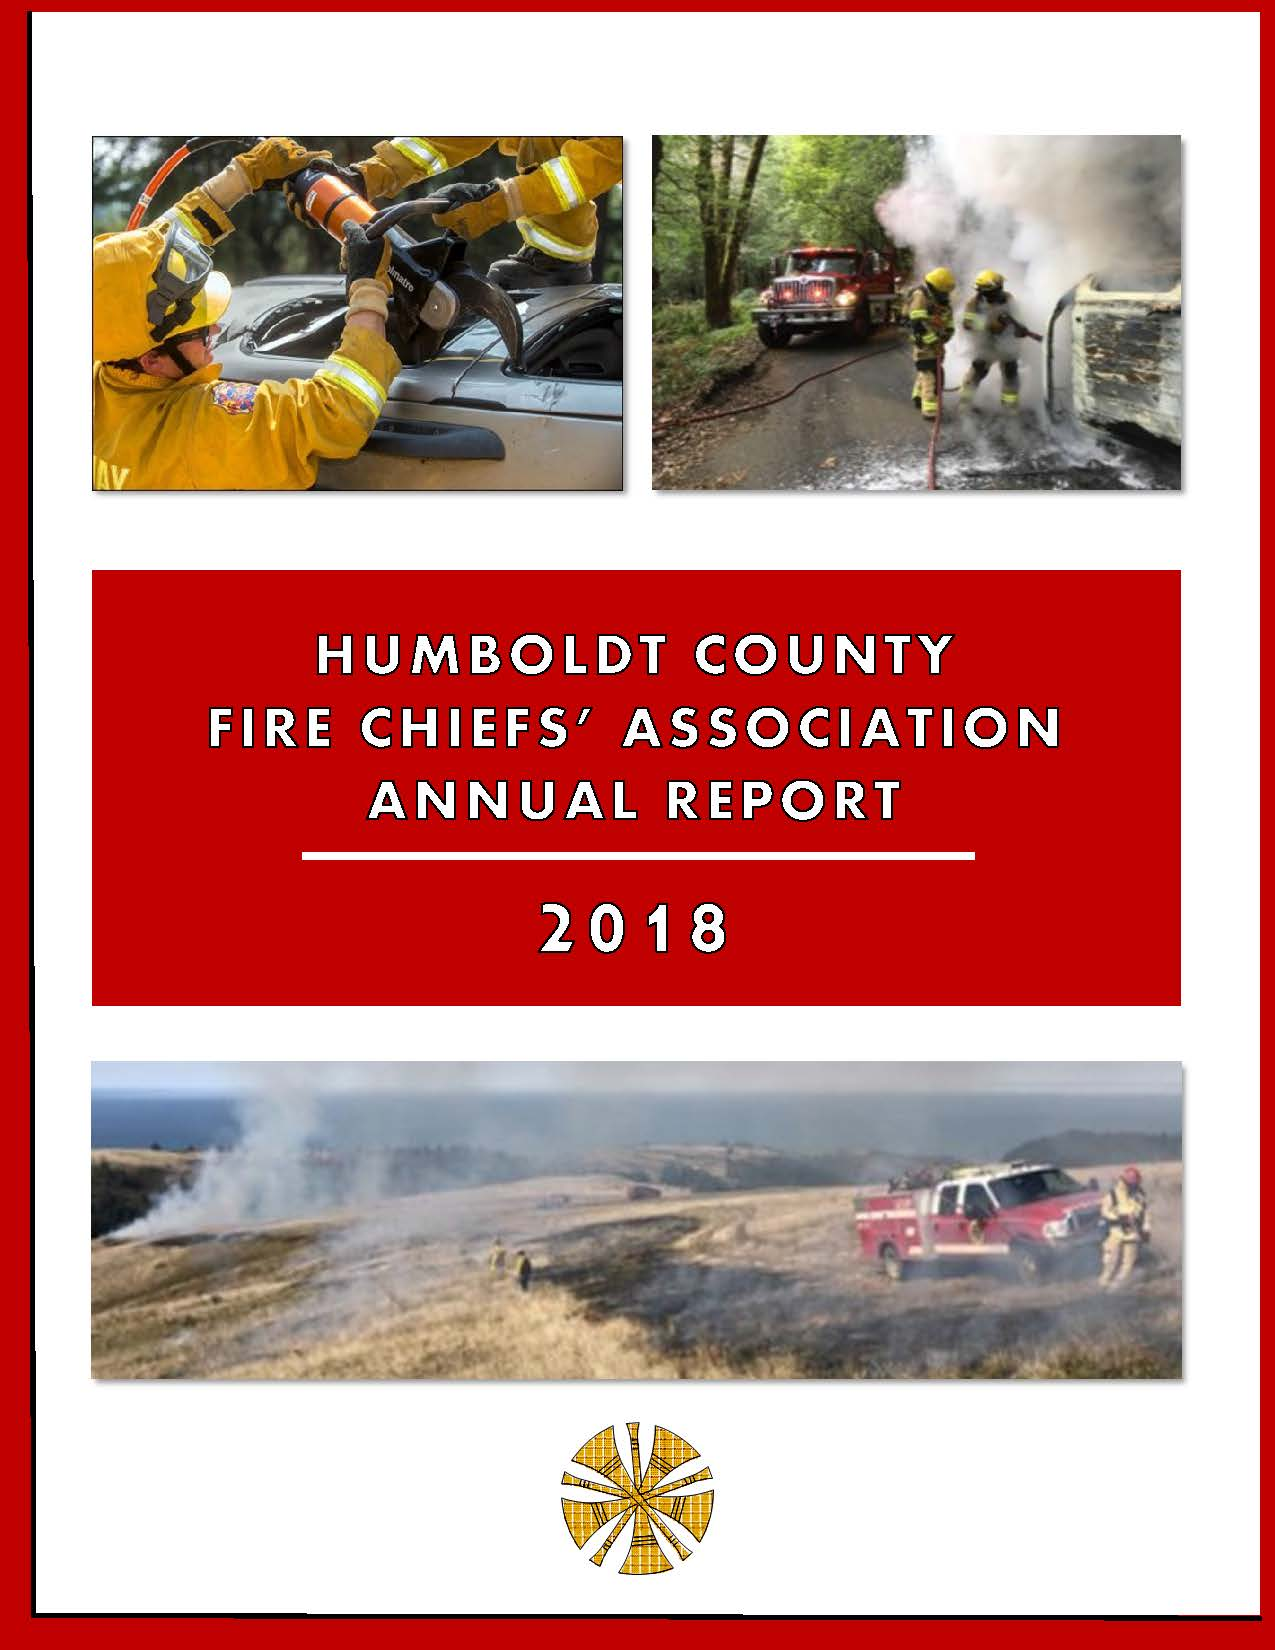 Cover Page of the 2018 Fire Chiefs' Association Annual Report